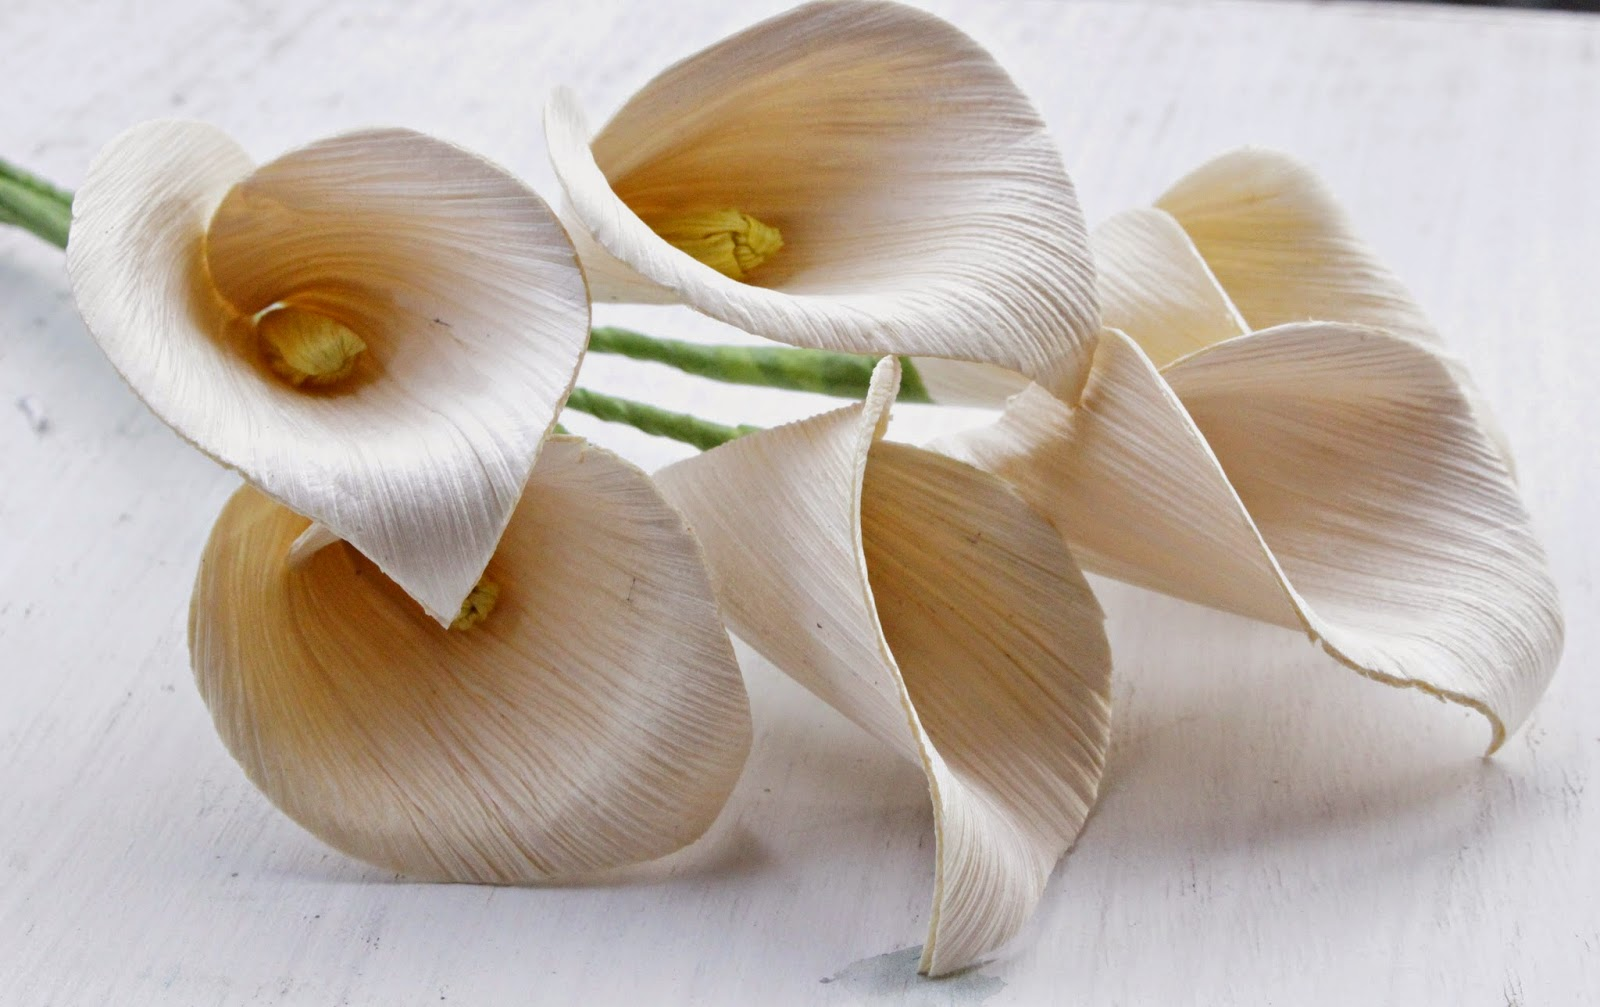 Diy how to make calla lily flowers using dried corn husks reduce diy how to make calla lily flowers using dried corn husks reduce reuse recycle replenish restore izmirmasajfo Image collections